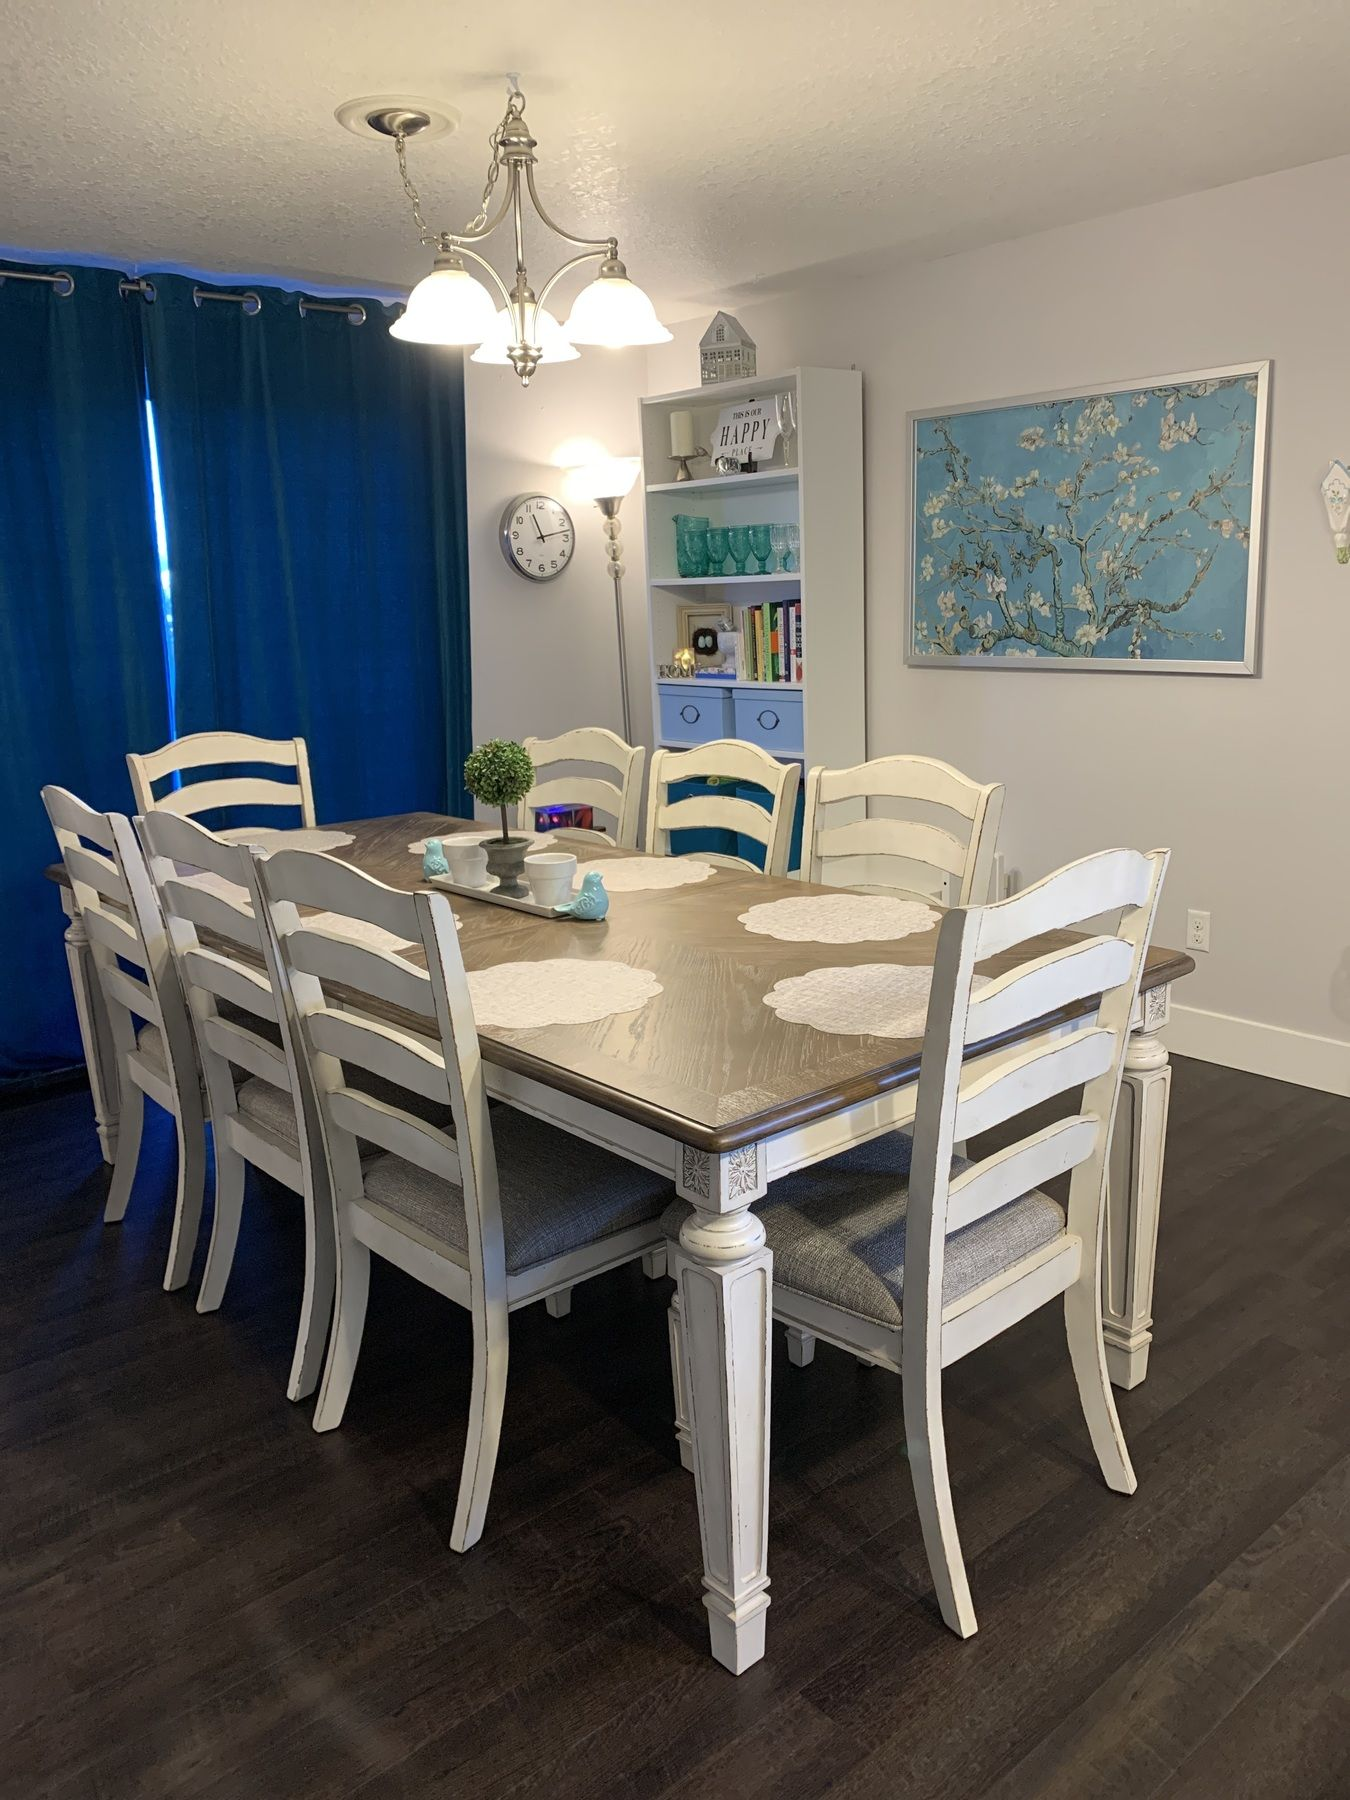 Realyn Dining Extension Table Ashley Furniture Homestore In 2020 Extension Table Dining Room Server At Home Store